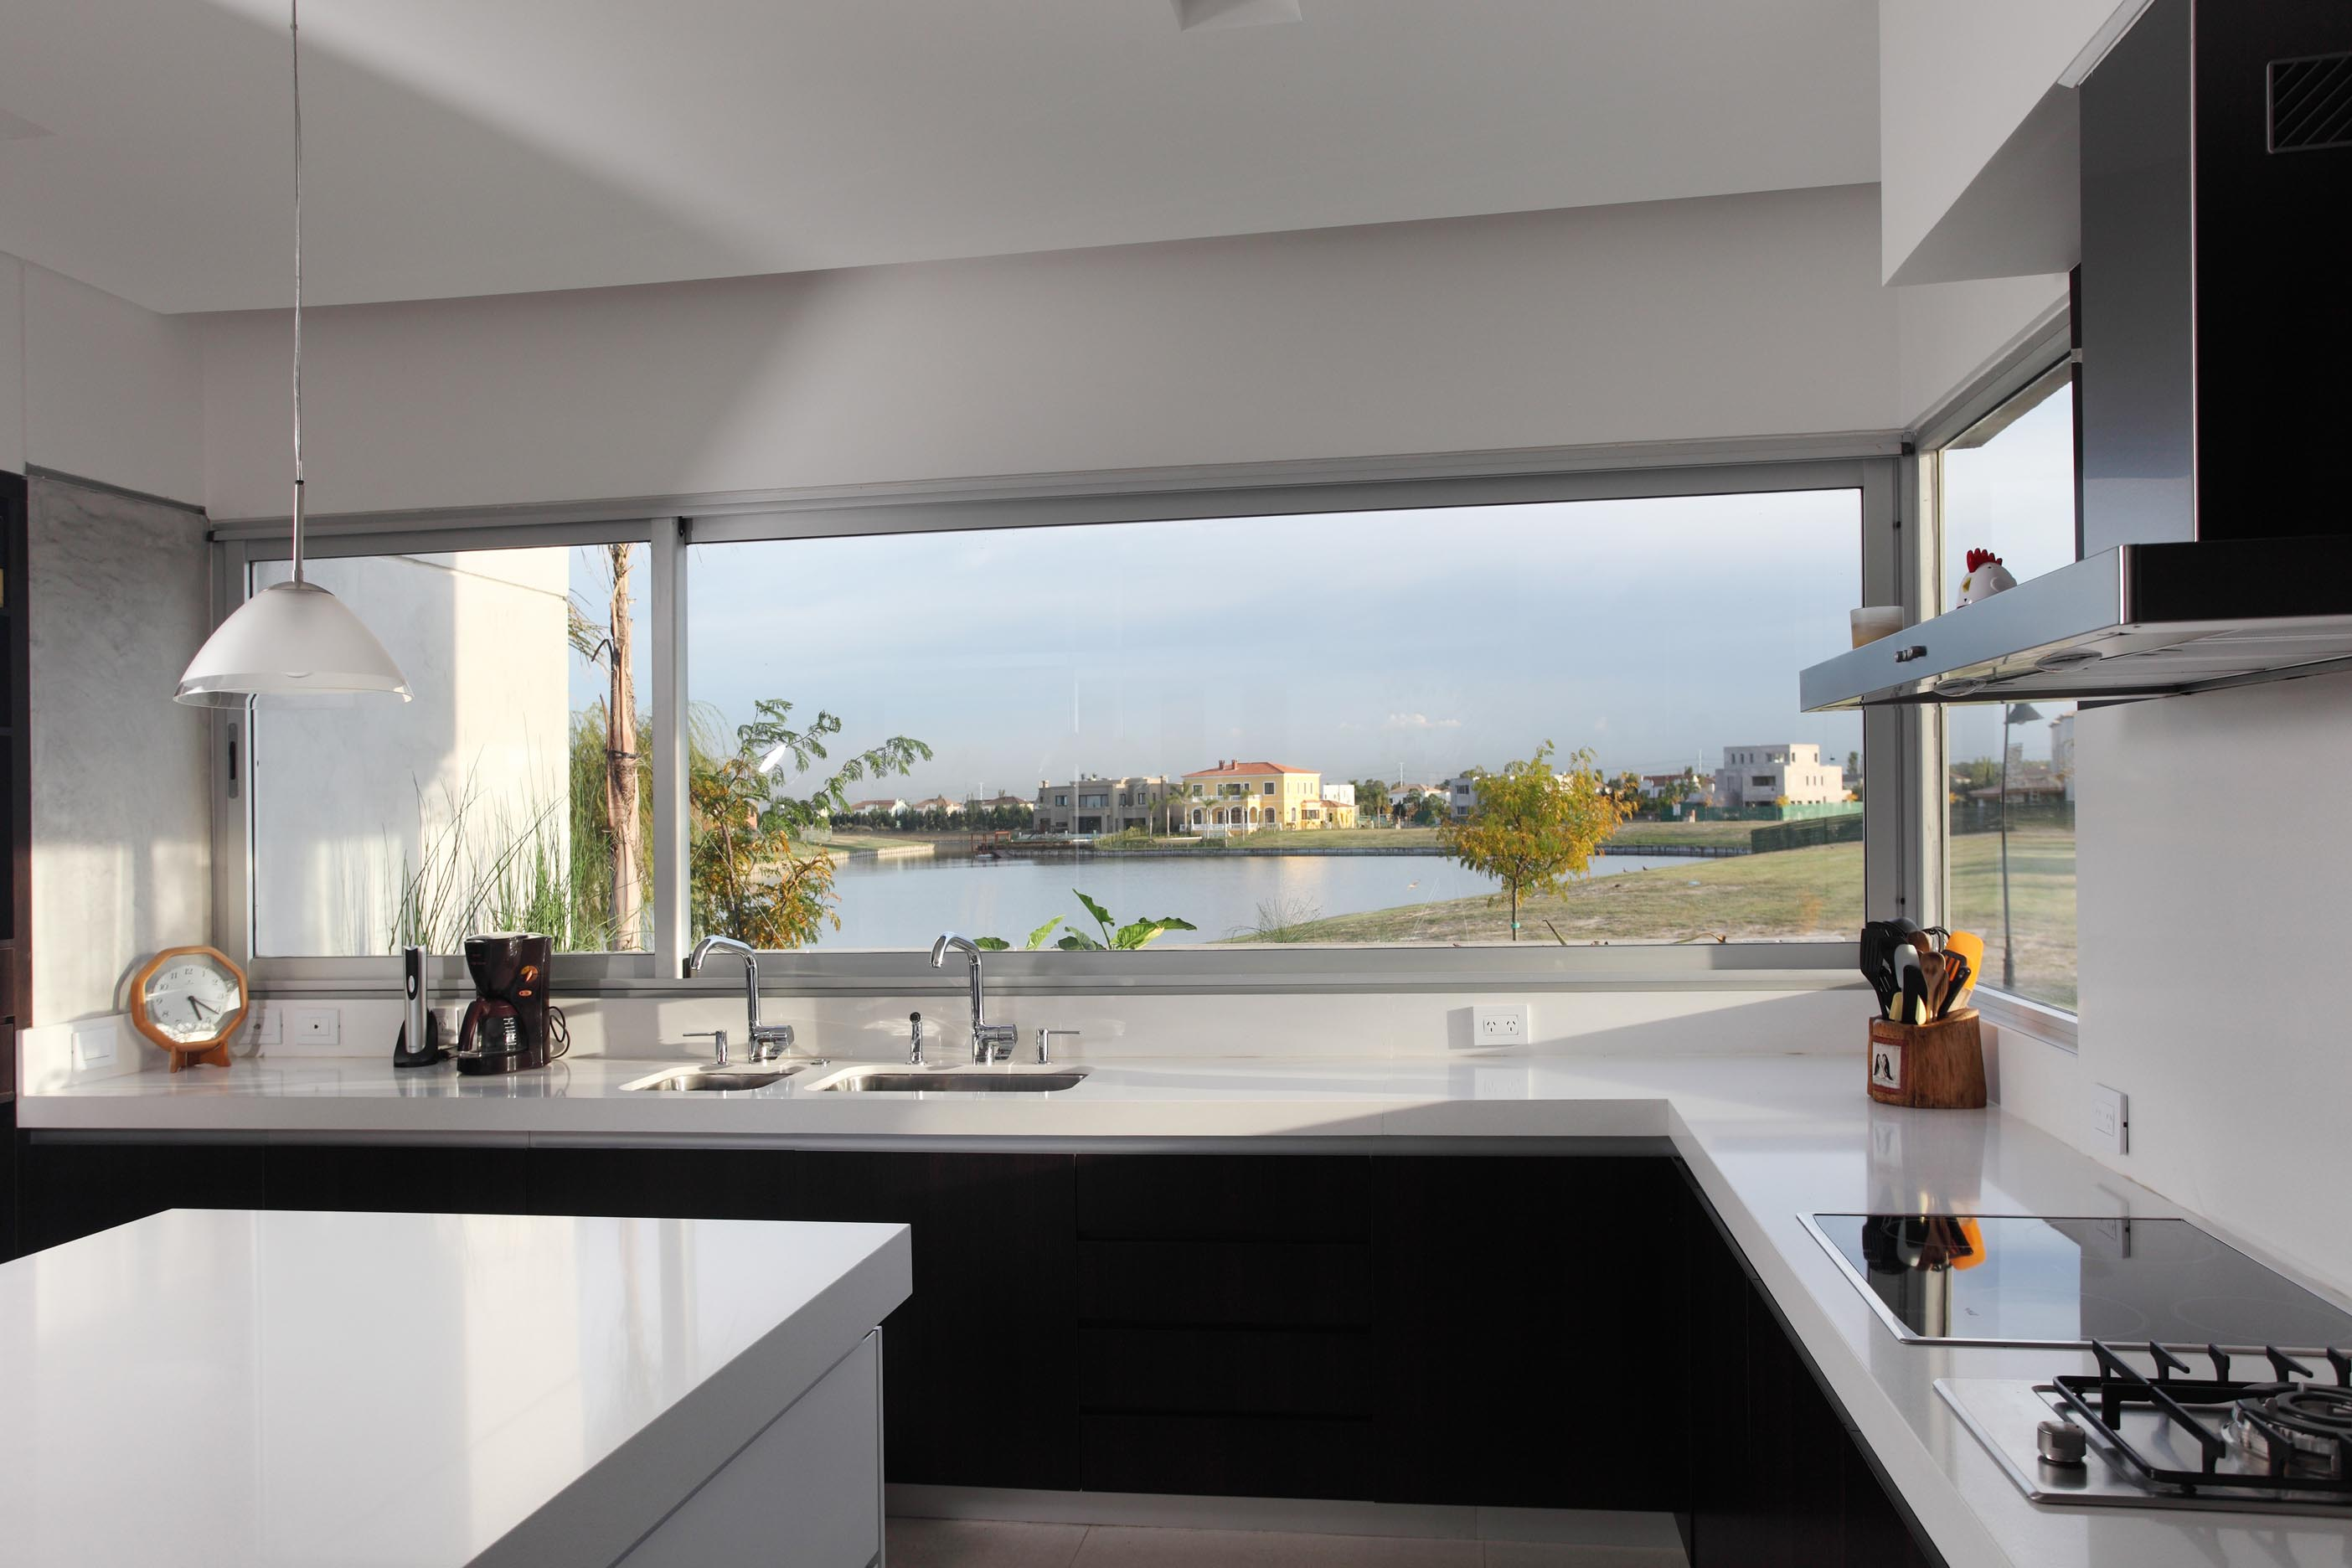 Wonderful Panoramic View From Glass Window In Modern Black And White Kitchen  With Long Black Counter